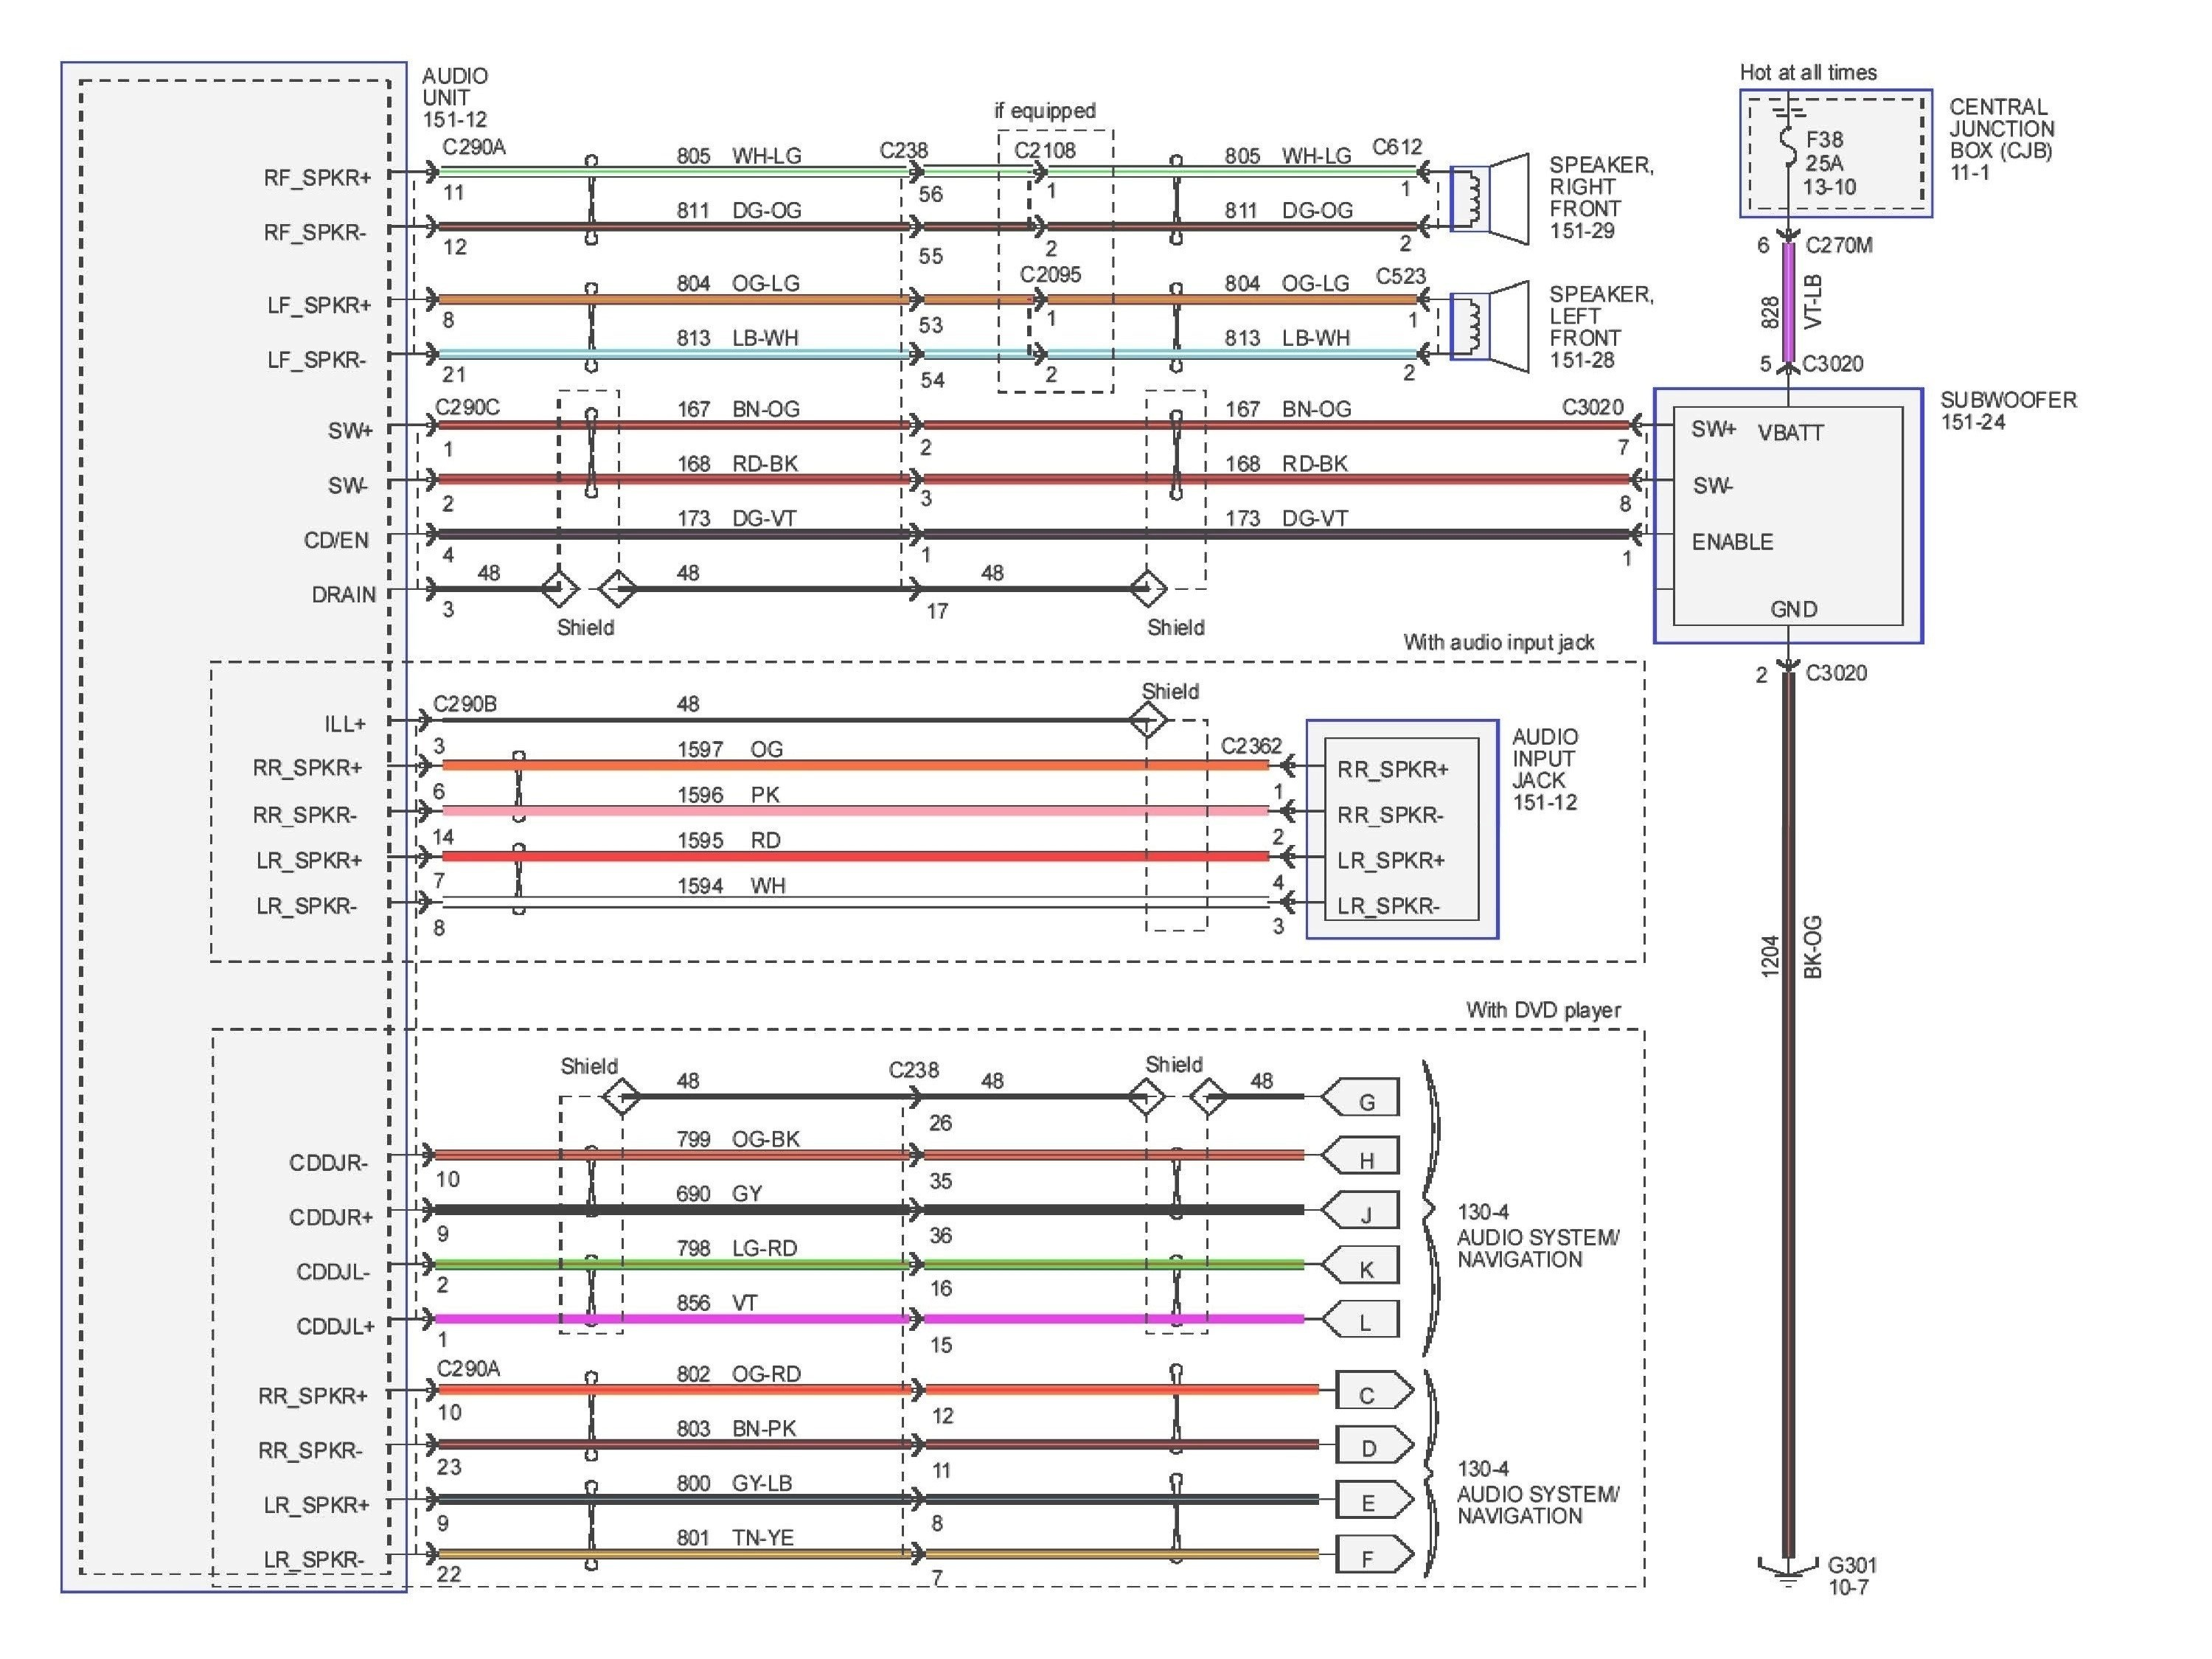 diagram] wiring diagram pioneer deh 17 full version hd quality deh 17 -  easysolarpaneldiagram.belleilmersion.fr  easysolarpaneldiagram.belleilmersion.fr